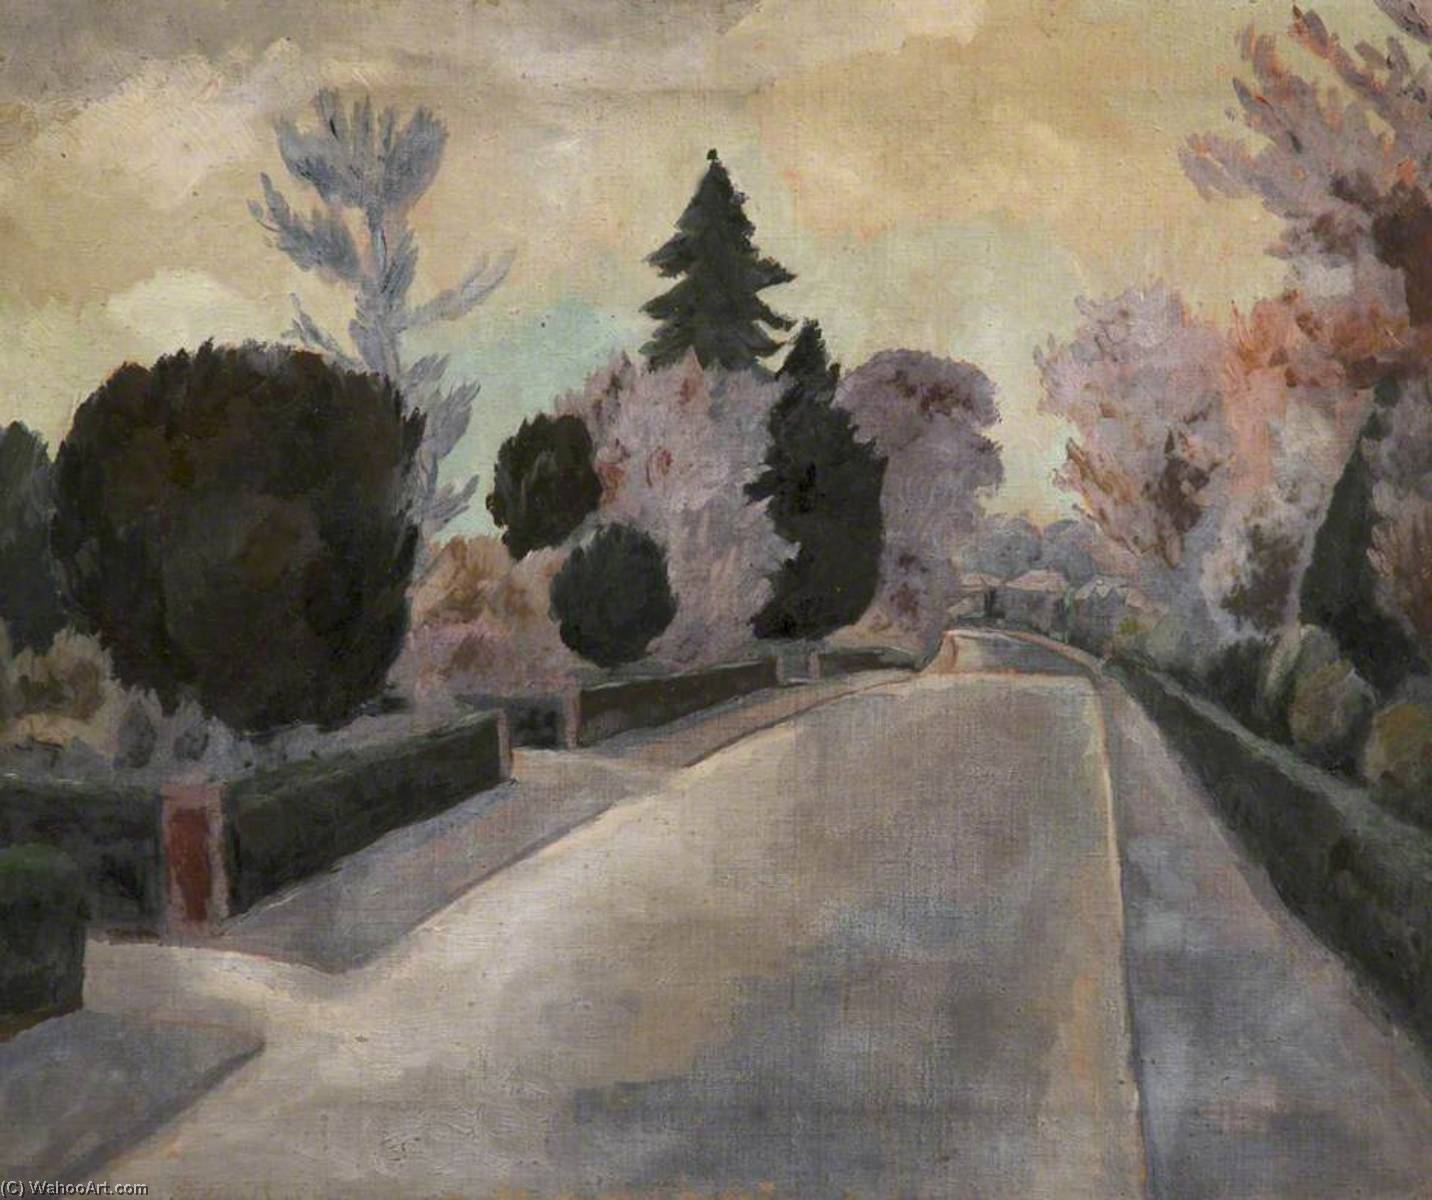 The Wet Road, Oil On Canvas by William Townsend